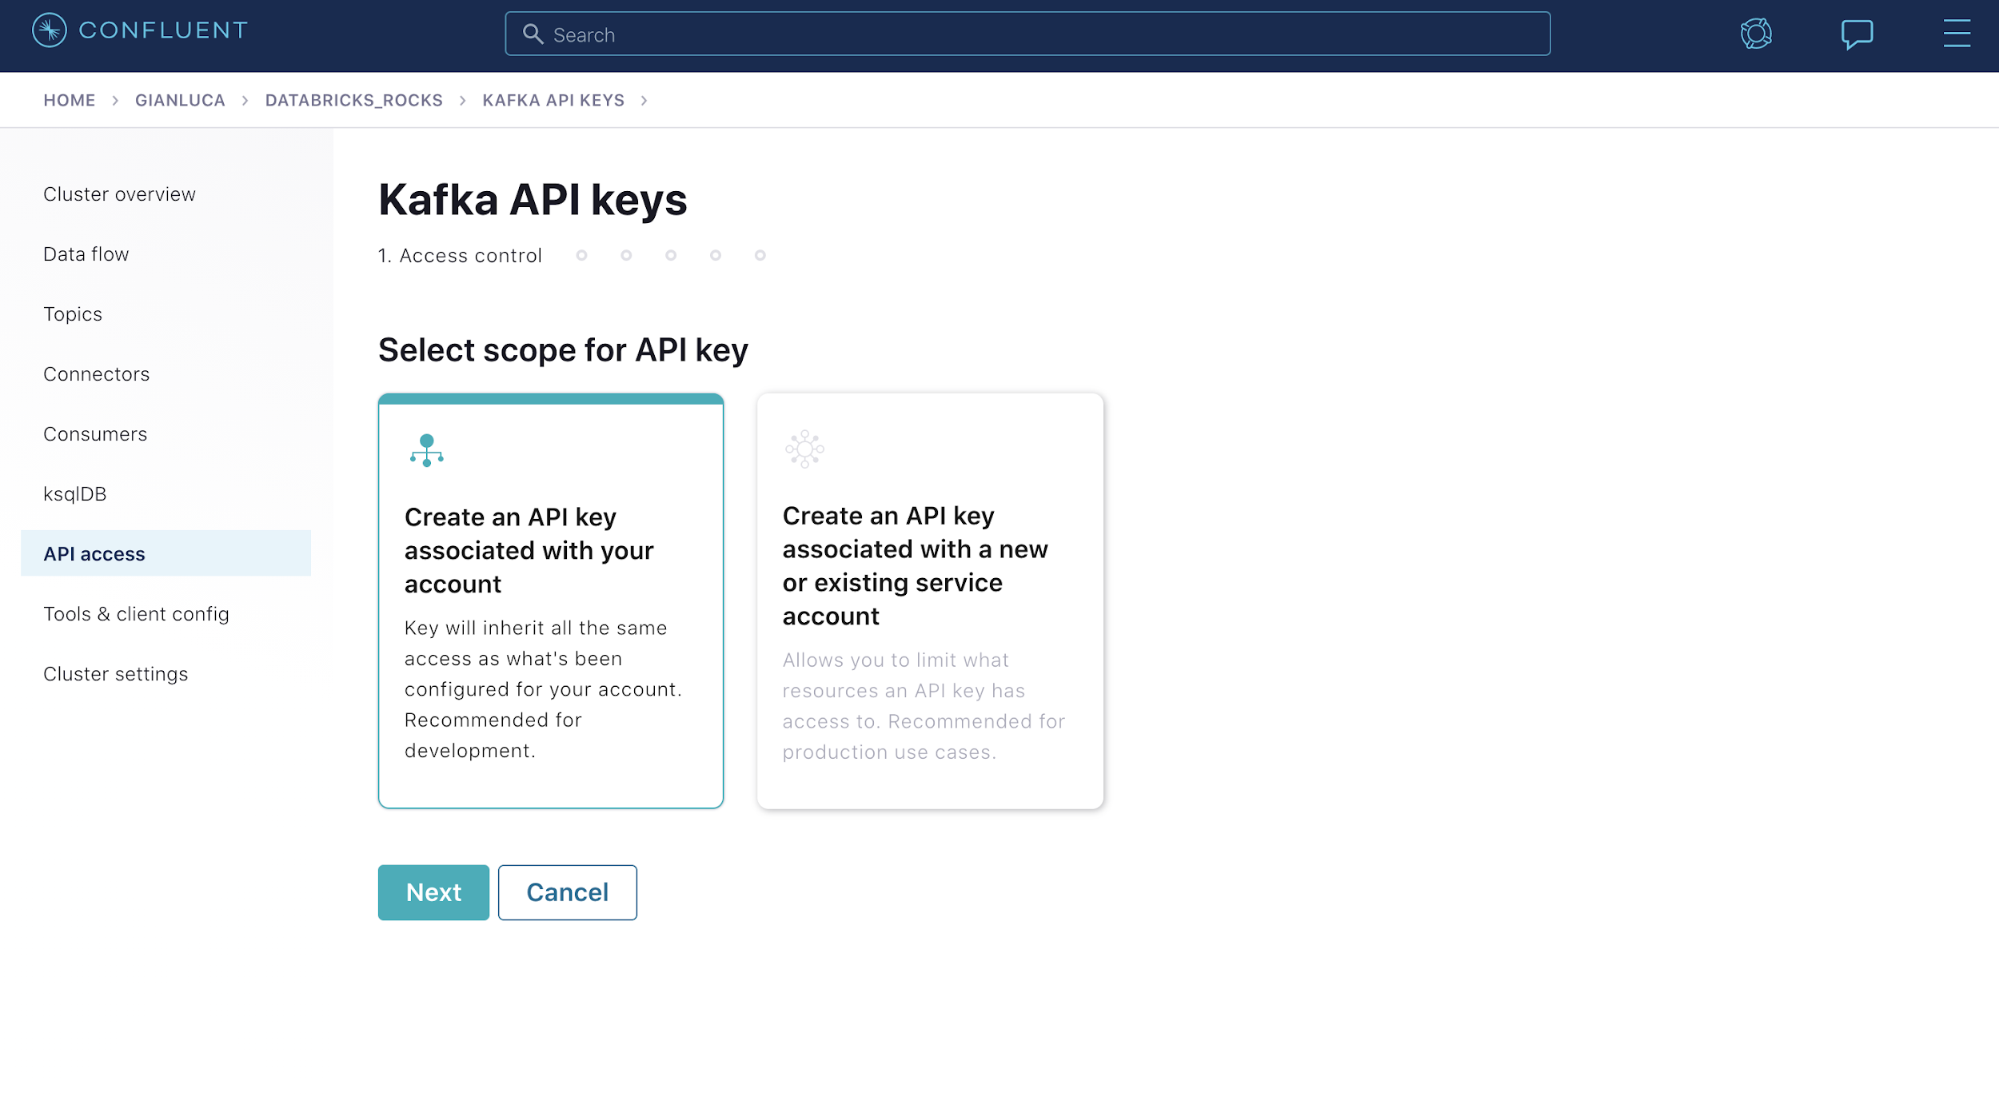 Select scope for API key